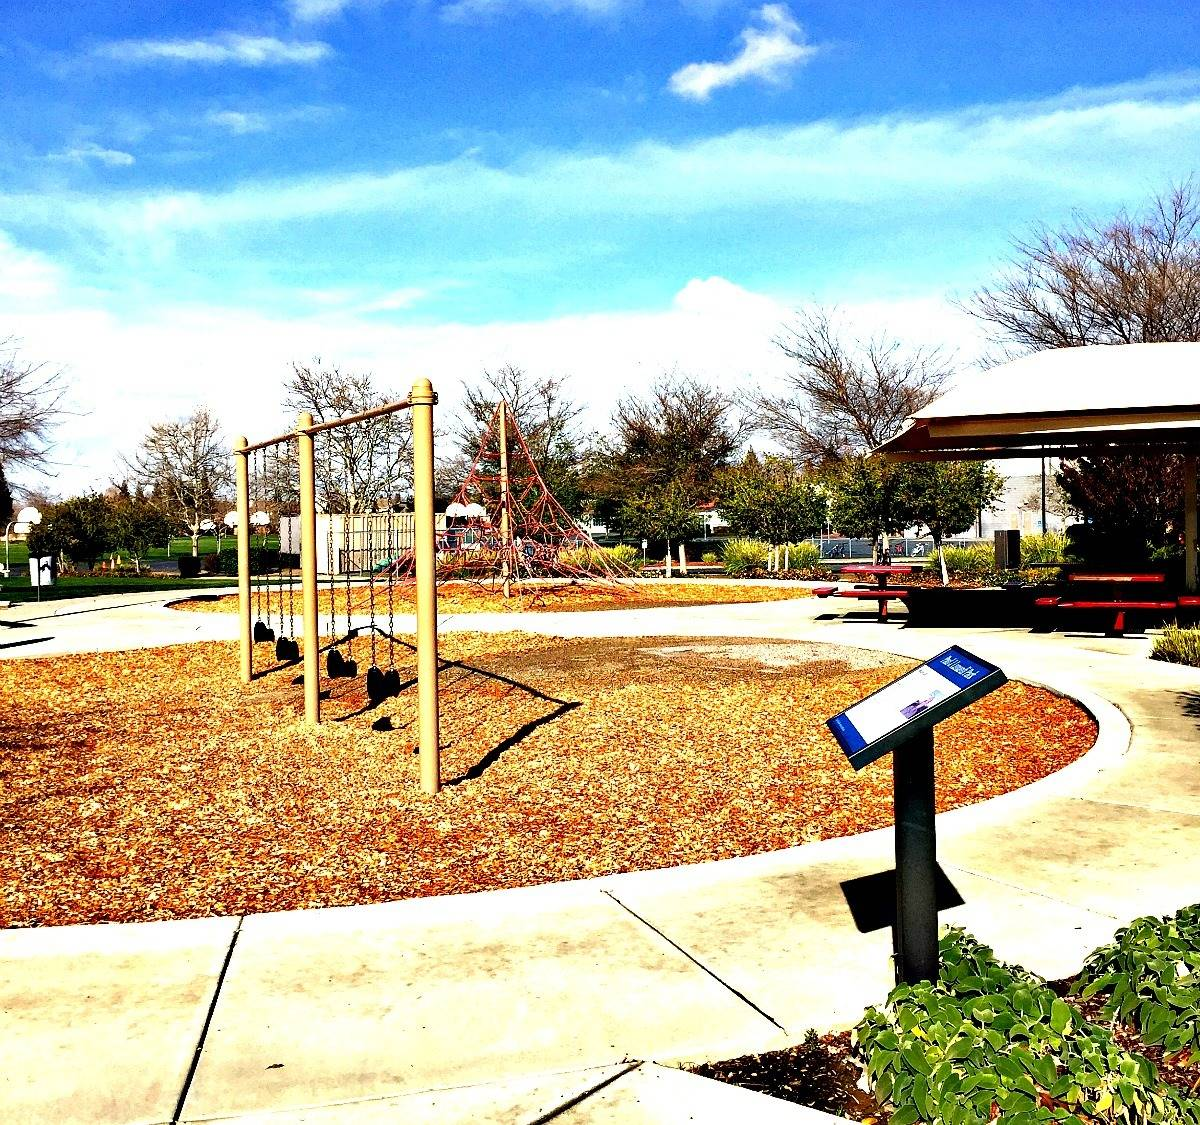 Kaye Swain Sacramento Roseville real estate agent sharing Lunardi Park with swings and climbing equipment